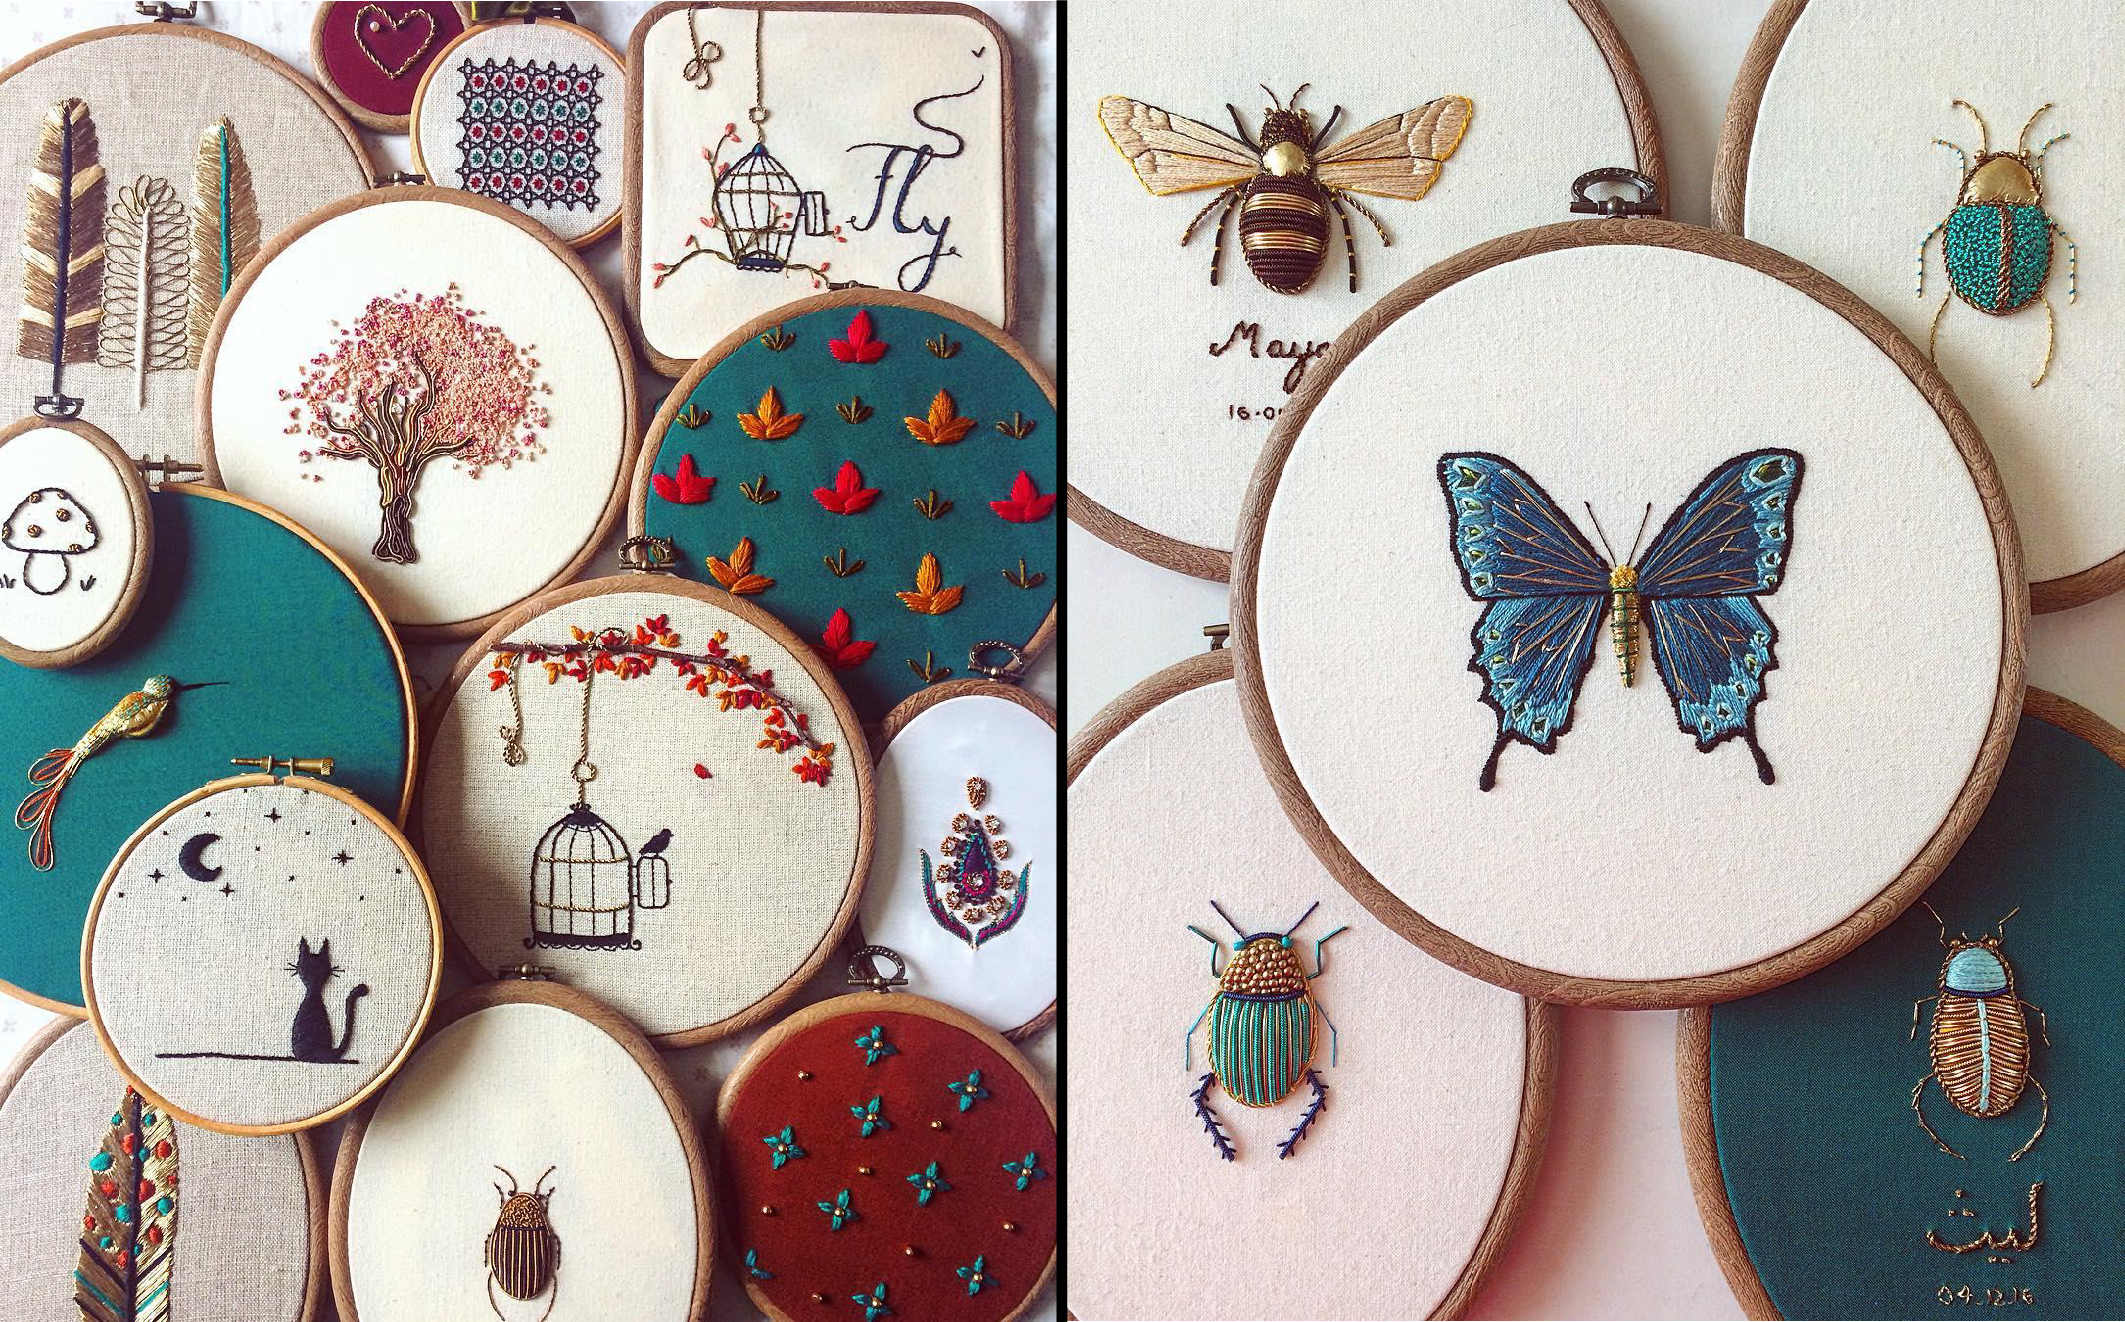 Incredible Intricate Embroideries of Insects 14